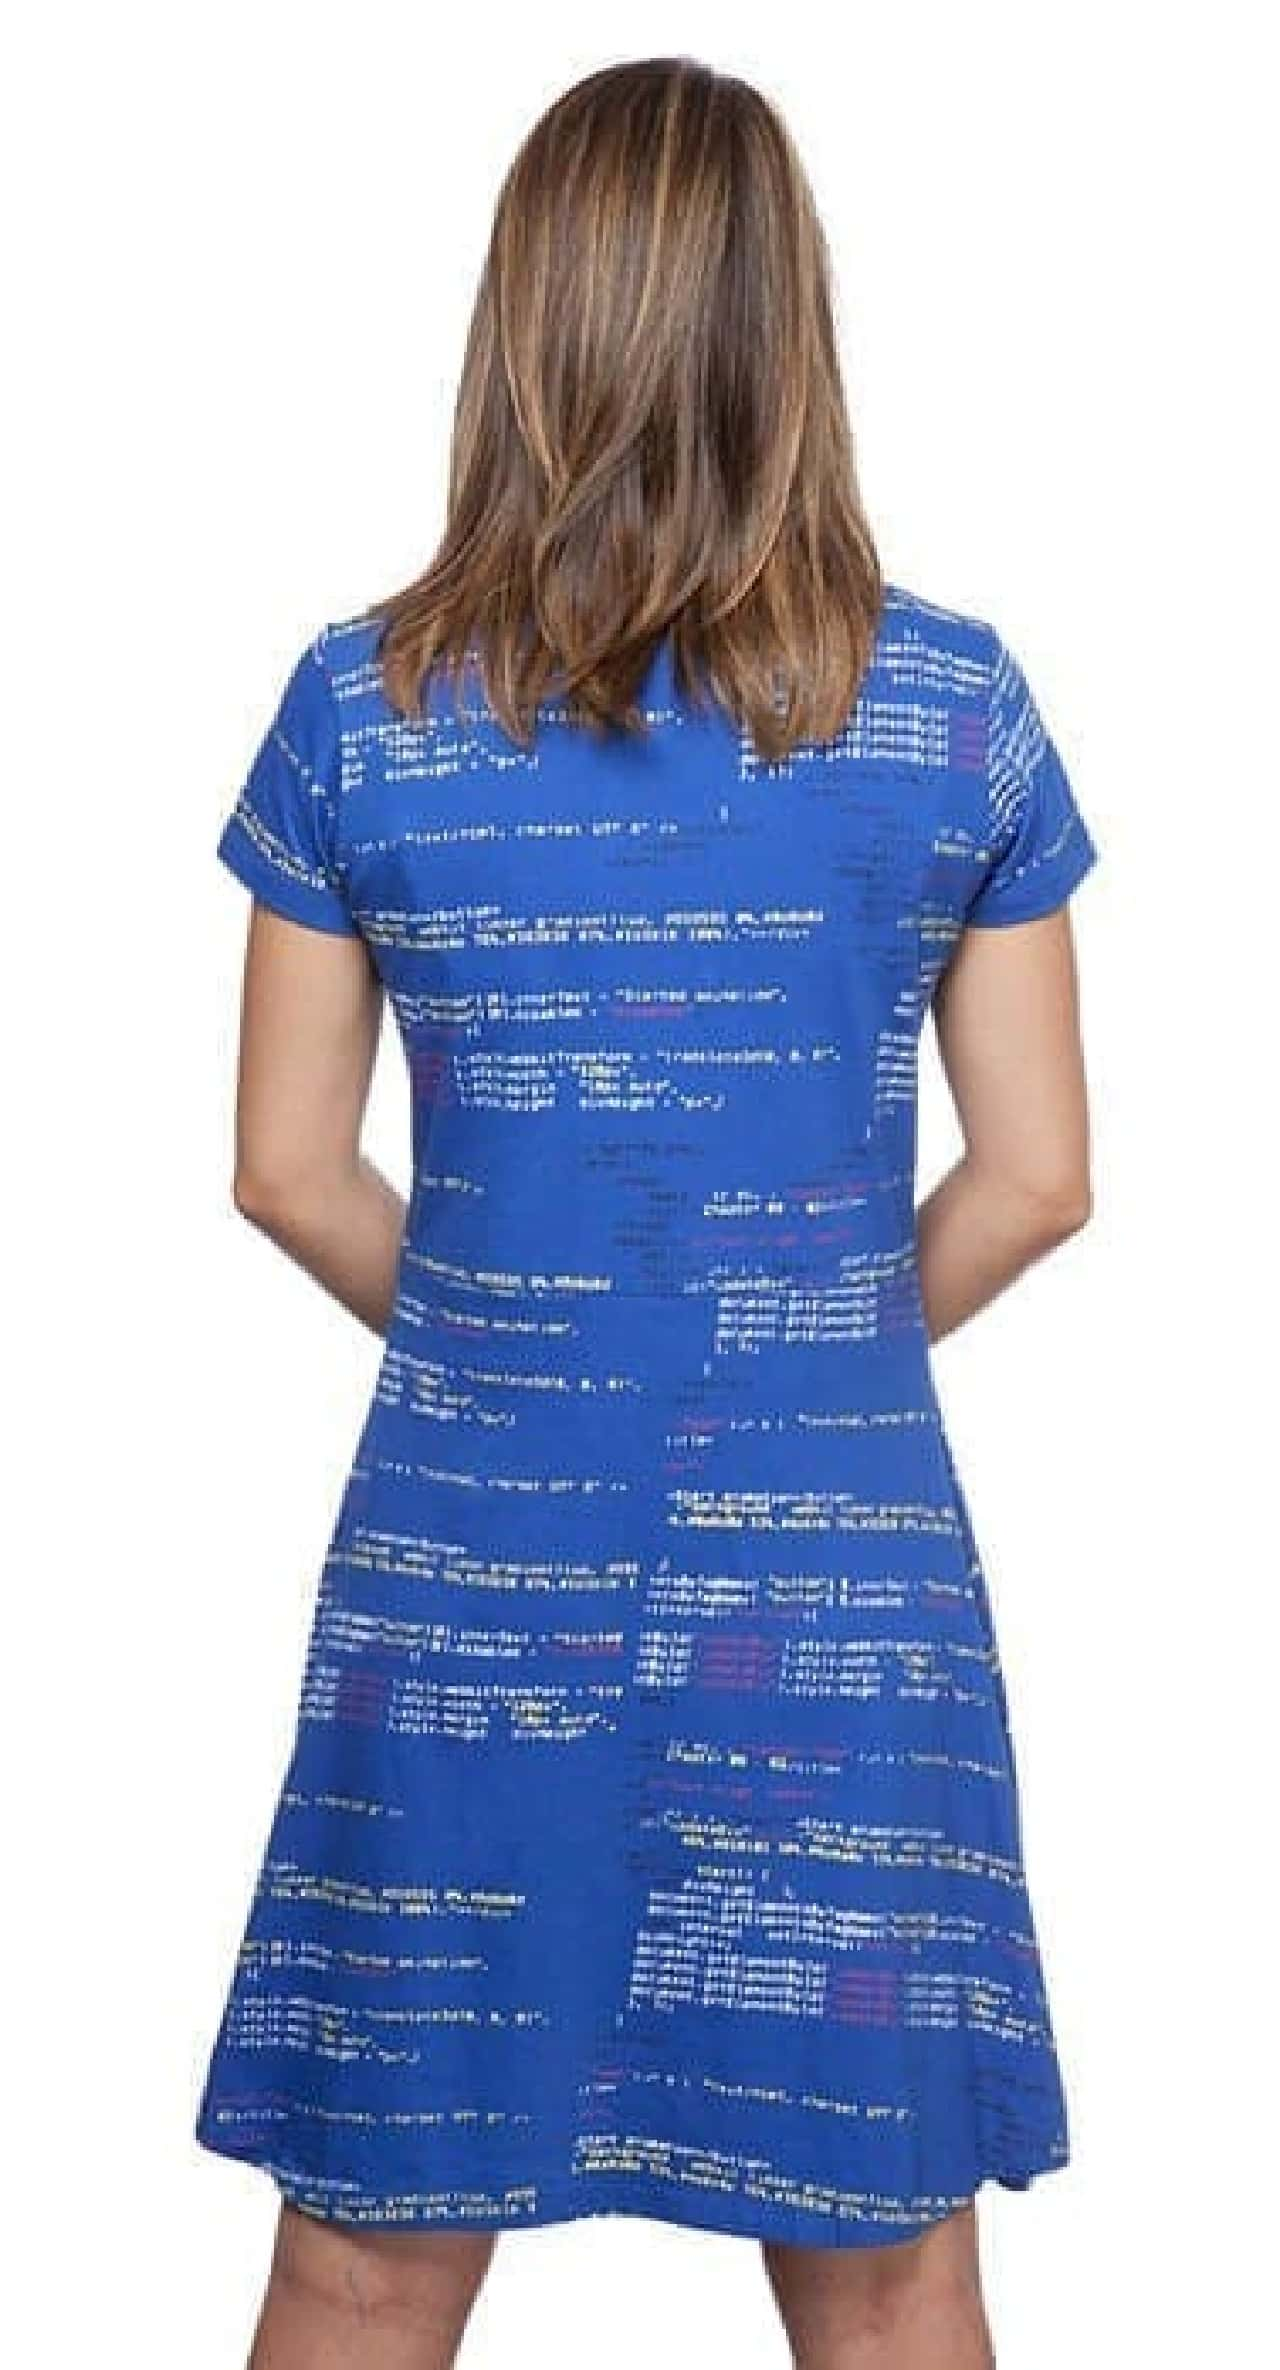 JavaScriptコードが書かれたドレス「JavaScript Code Fit & Flare Dress」